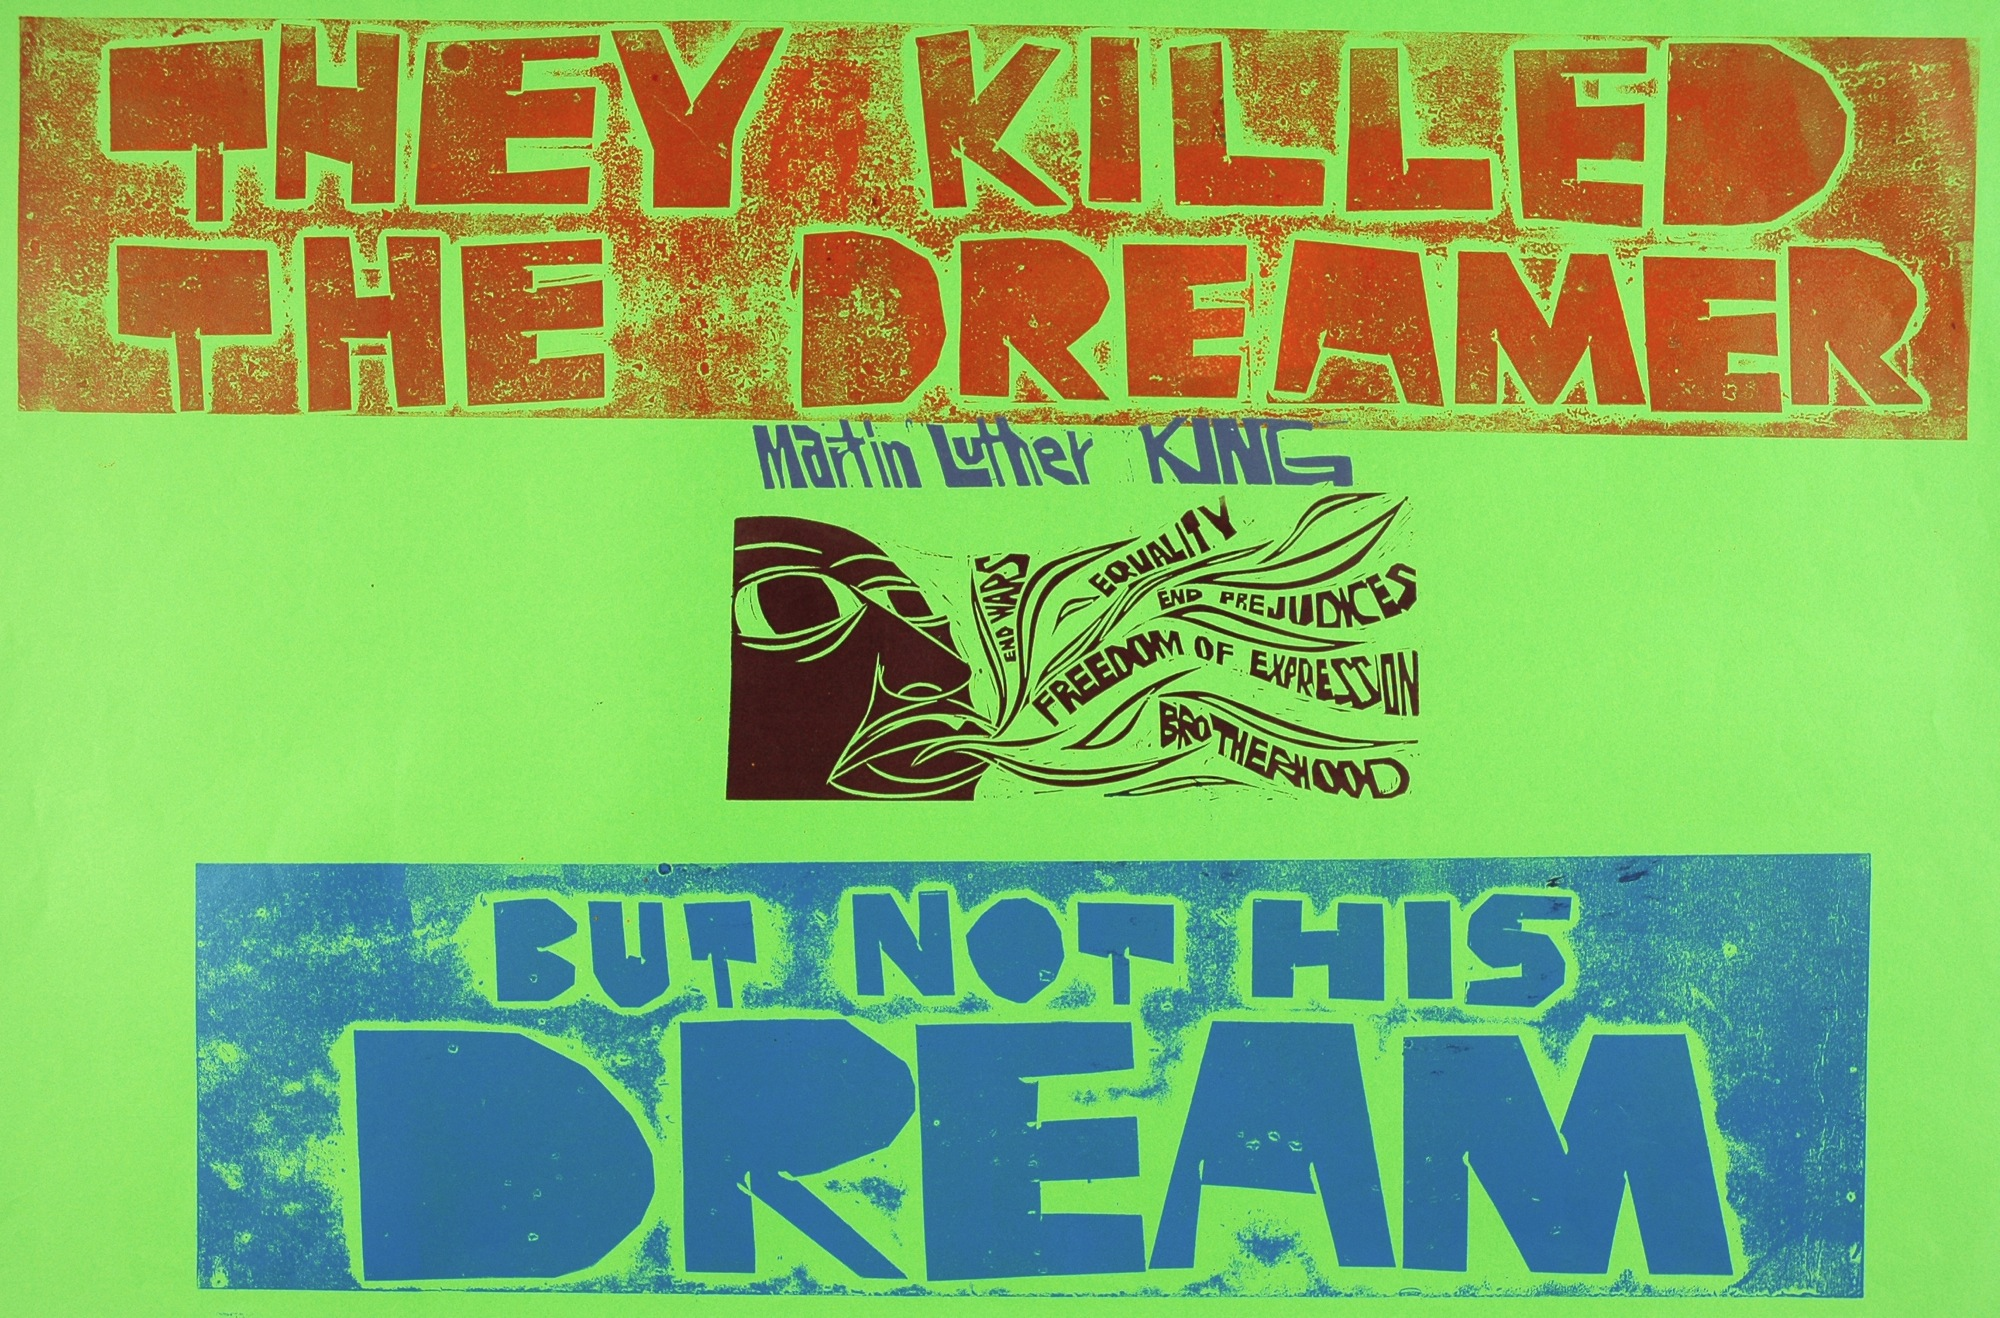 Paul Peter Piech-They killed the dreamer but not his dream-1979-CRsite